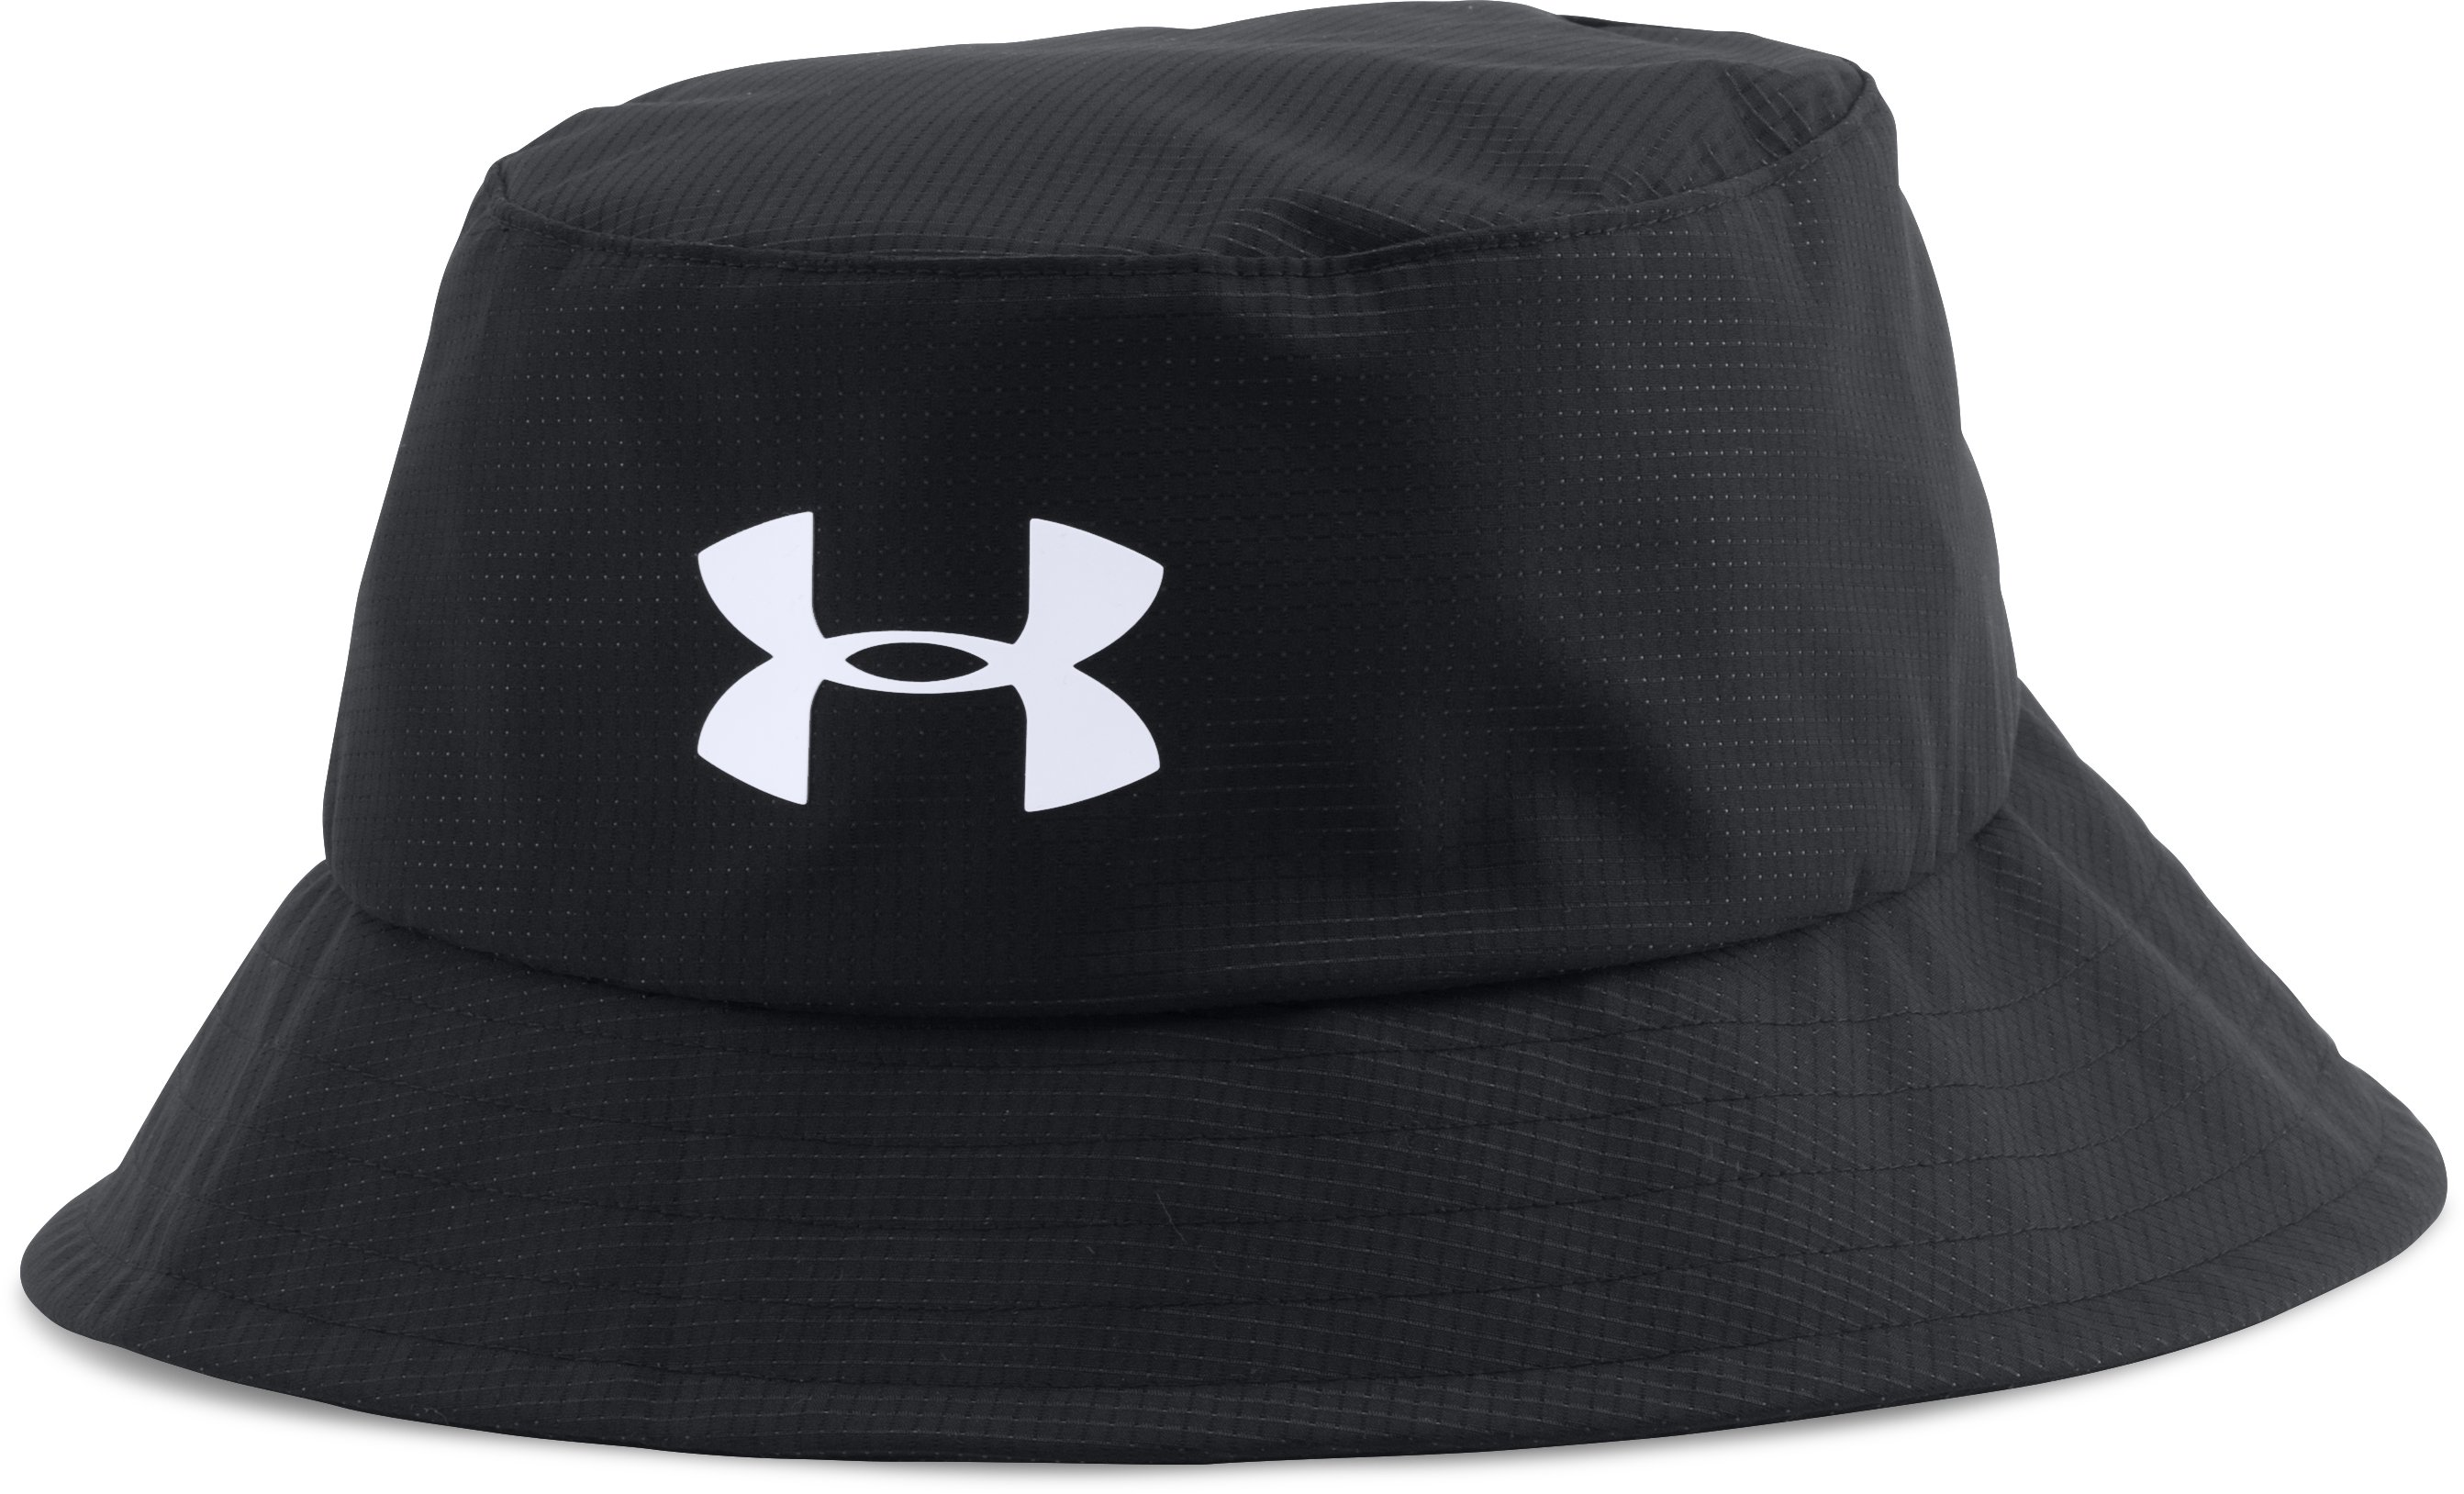 black bucket hats Men's UA Storm Golf Bucket Hat Sun protection...Sorry to have to discover this hat by losing a friend but it's great protection and I wear it in his memory....I like the hat in general.